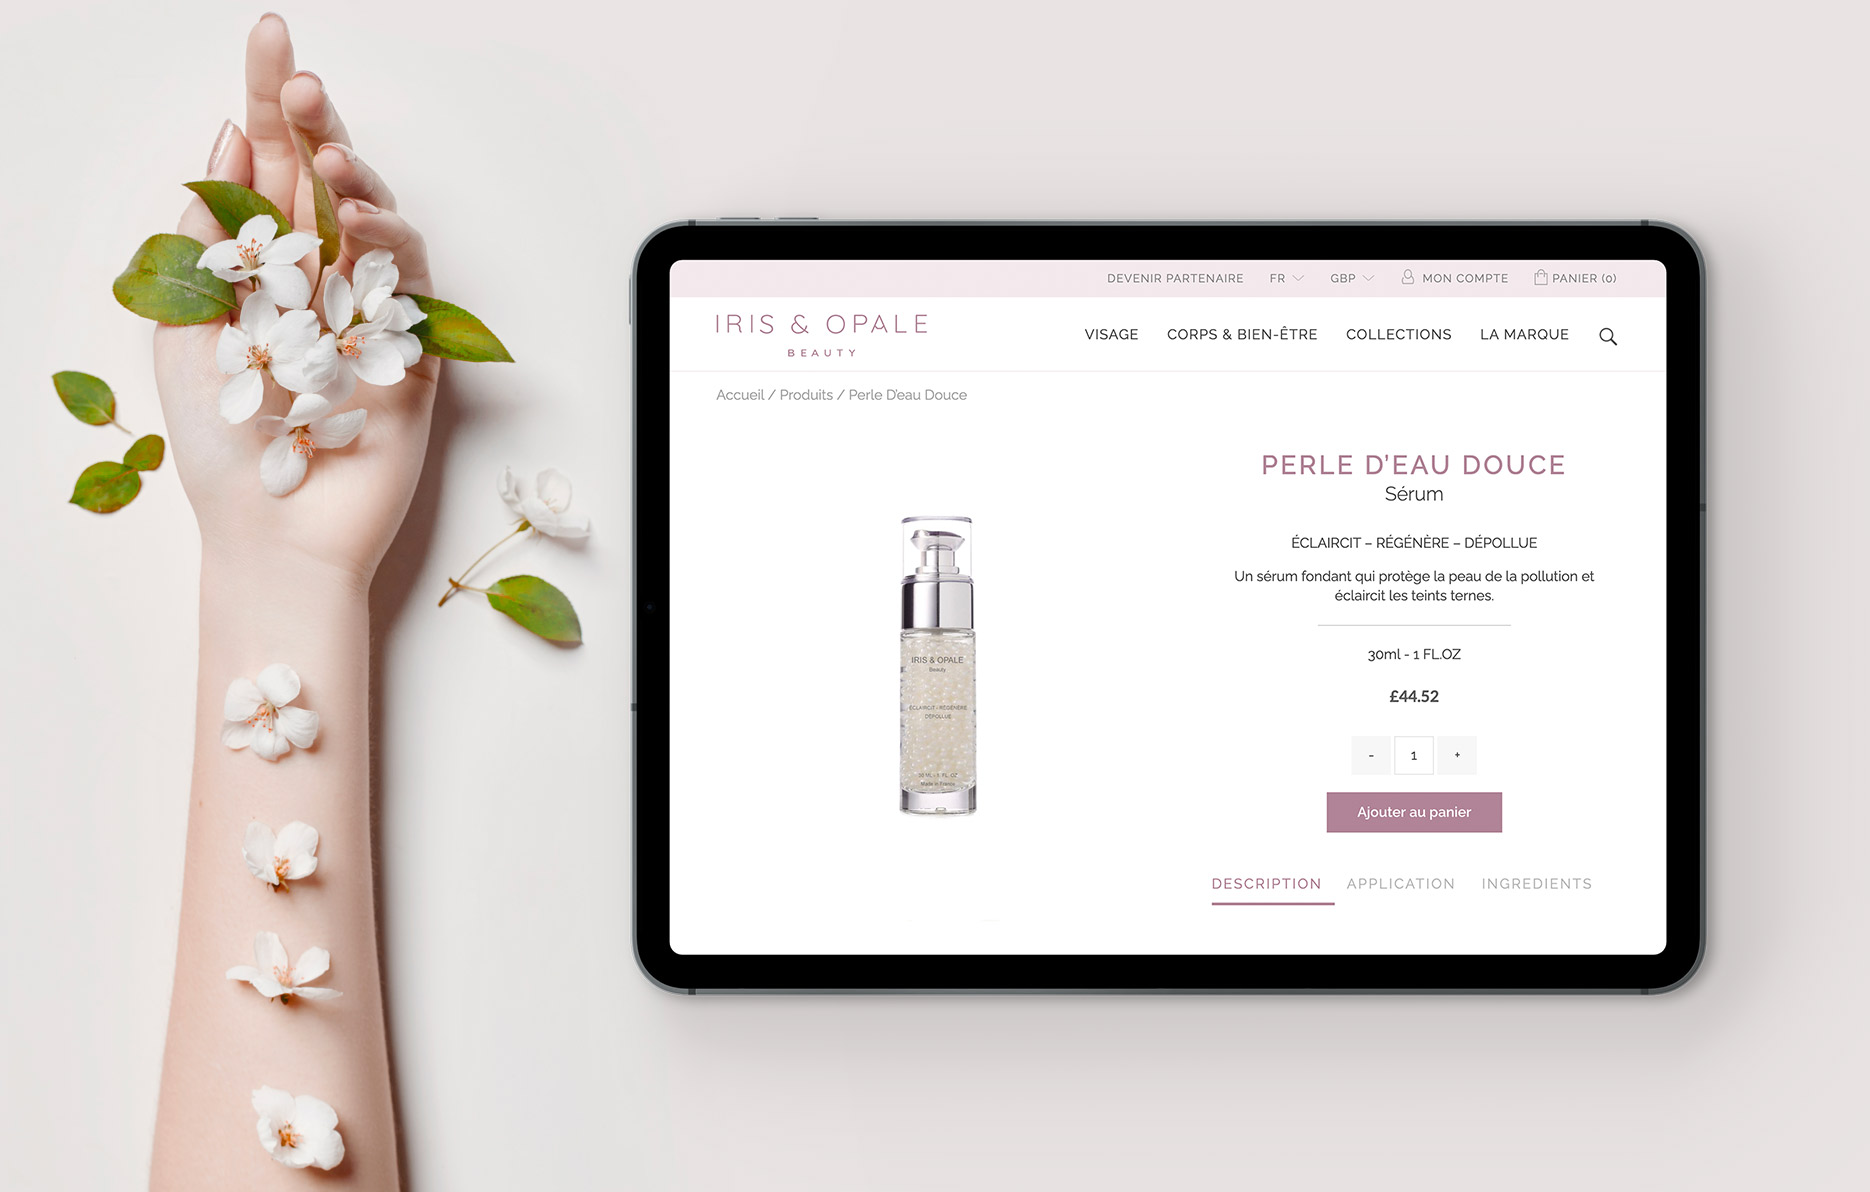 hand covered with flowers next to an iPad showing an ecommerce website